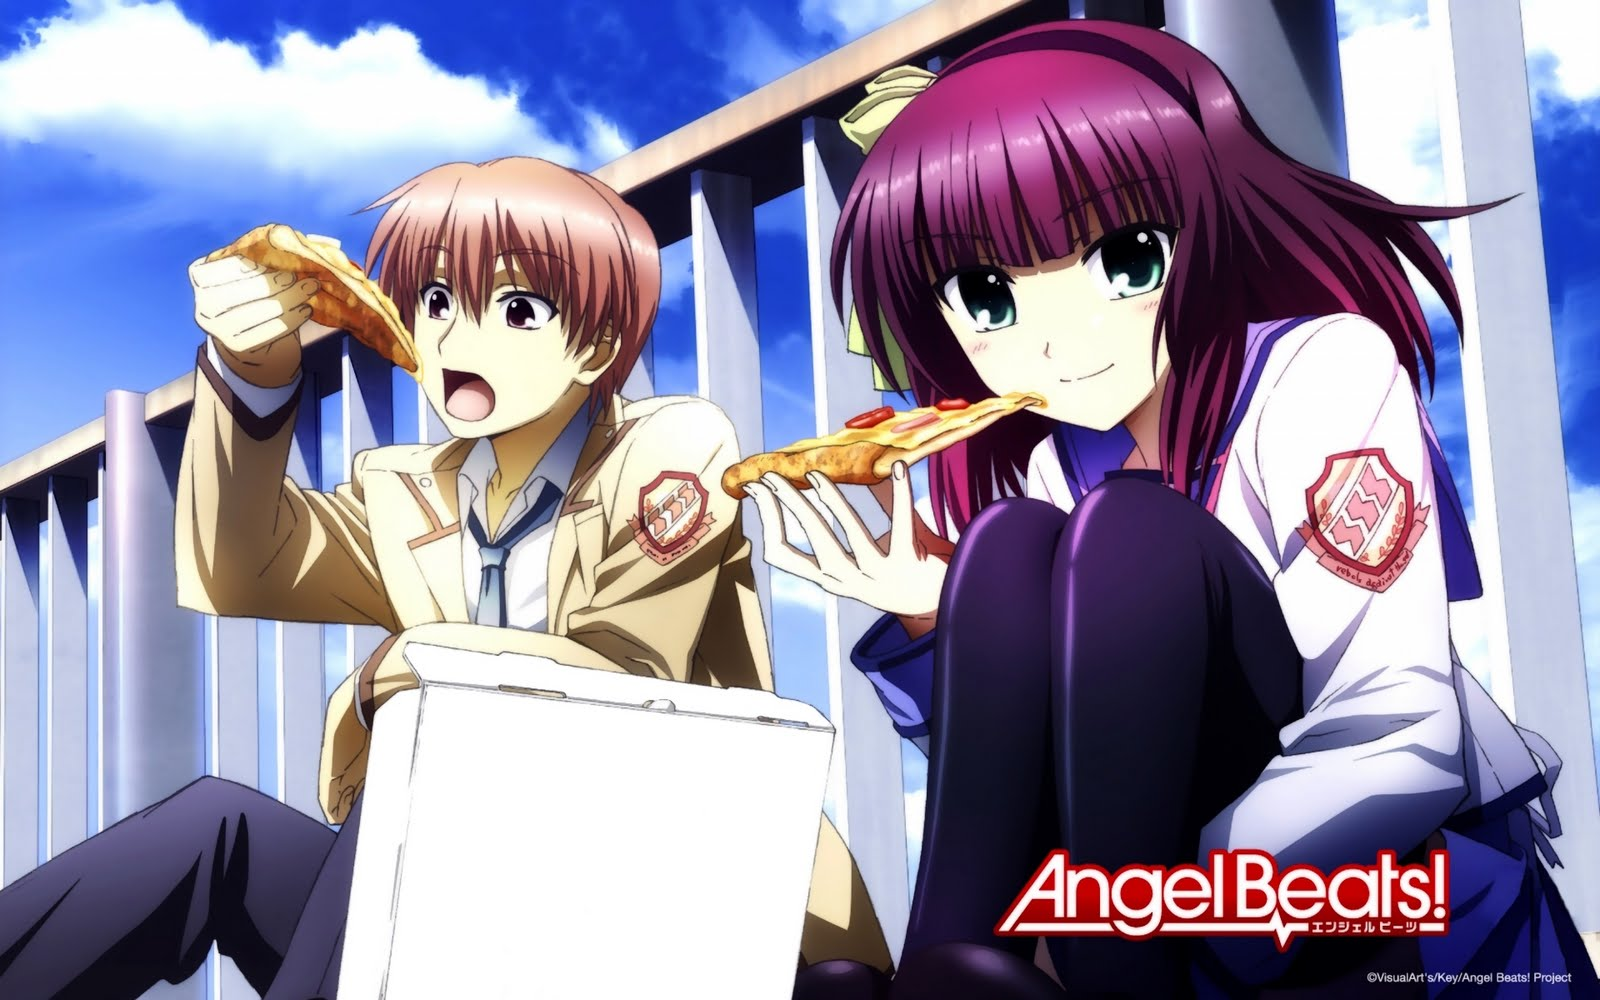 http://4.bp.blogspot.com/-8MkMCT6ryTA/TdmaUBRMUgI/AAAAAAAAA8o/KsS2JQIit6I/s1600/7935%252520angel_beats%2521%252520green_eyes%252520nakamura_yuri%252520otonashi_yuzuru%252520purple_hair%252520red_hair%252520ribbons%252520seifuku%252520short_hair%252520thig